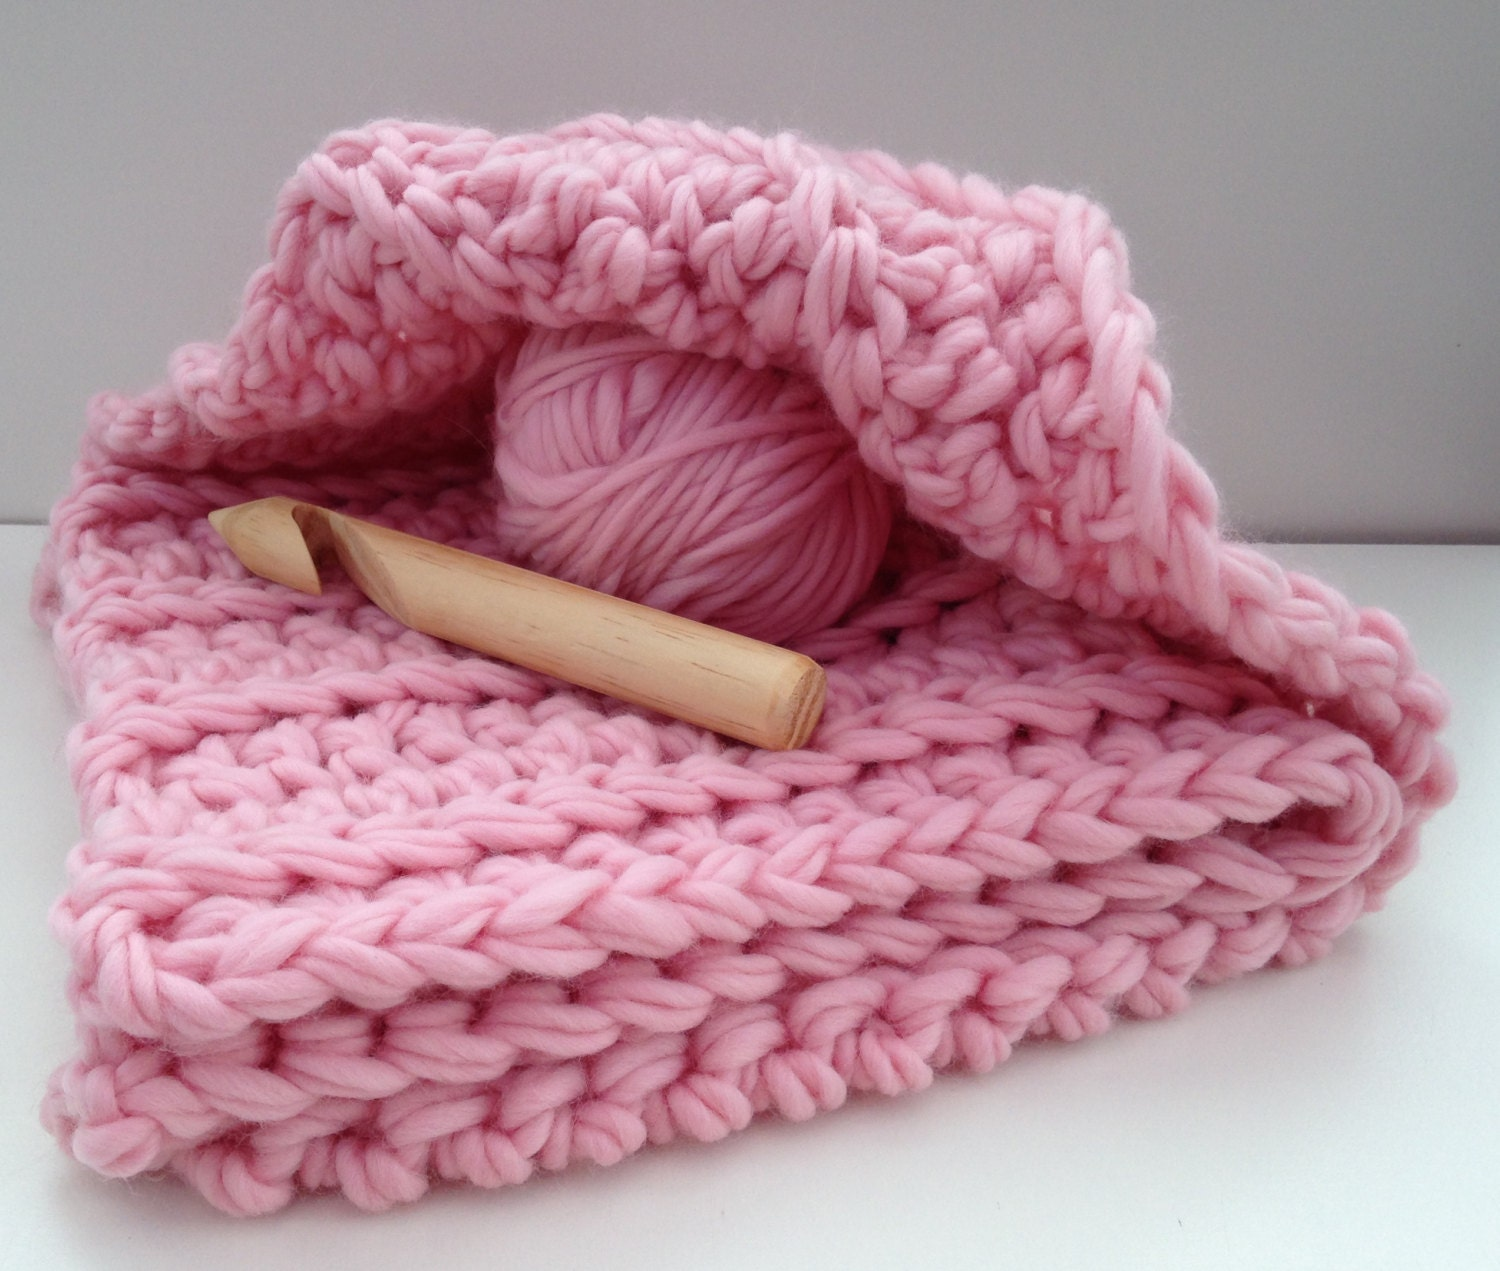 Crocheting Kit : Blanket crochet kit baby blanket. DIY Learn to crochet super